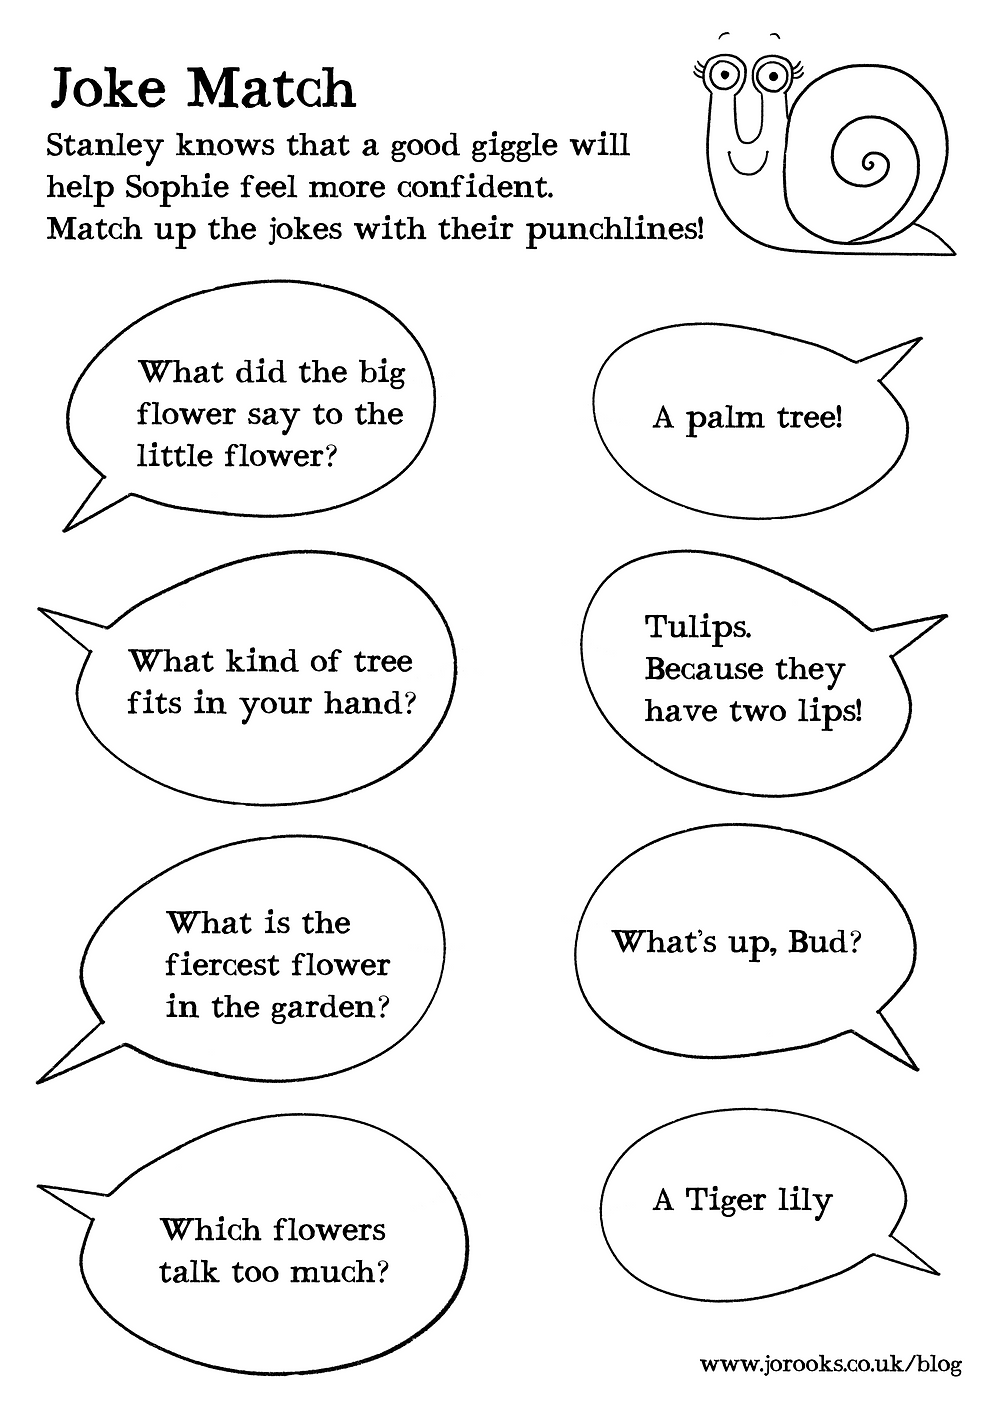 Joke match downloadable resource